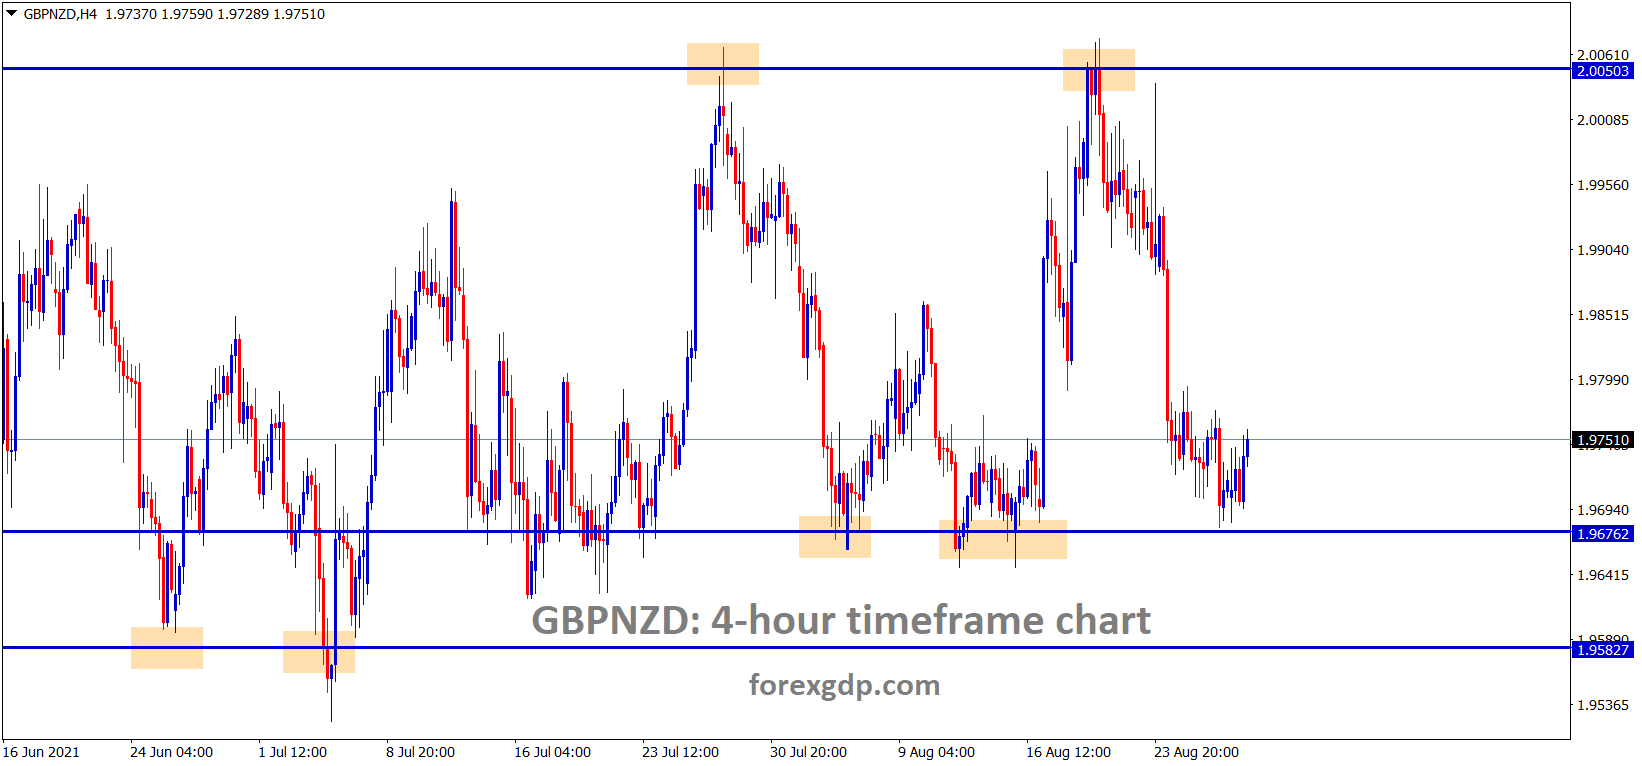 GBPNZD has rebounded a little bit after hitting the support area